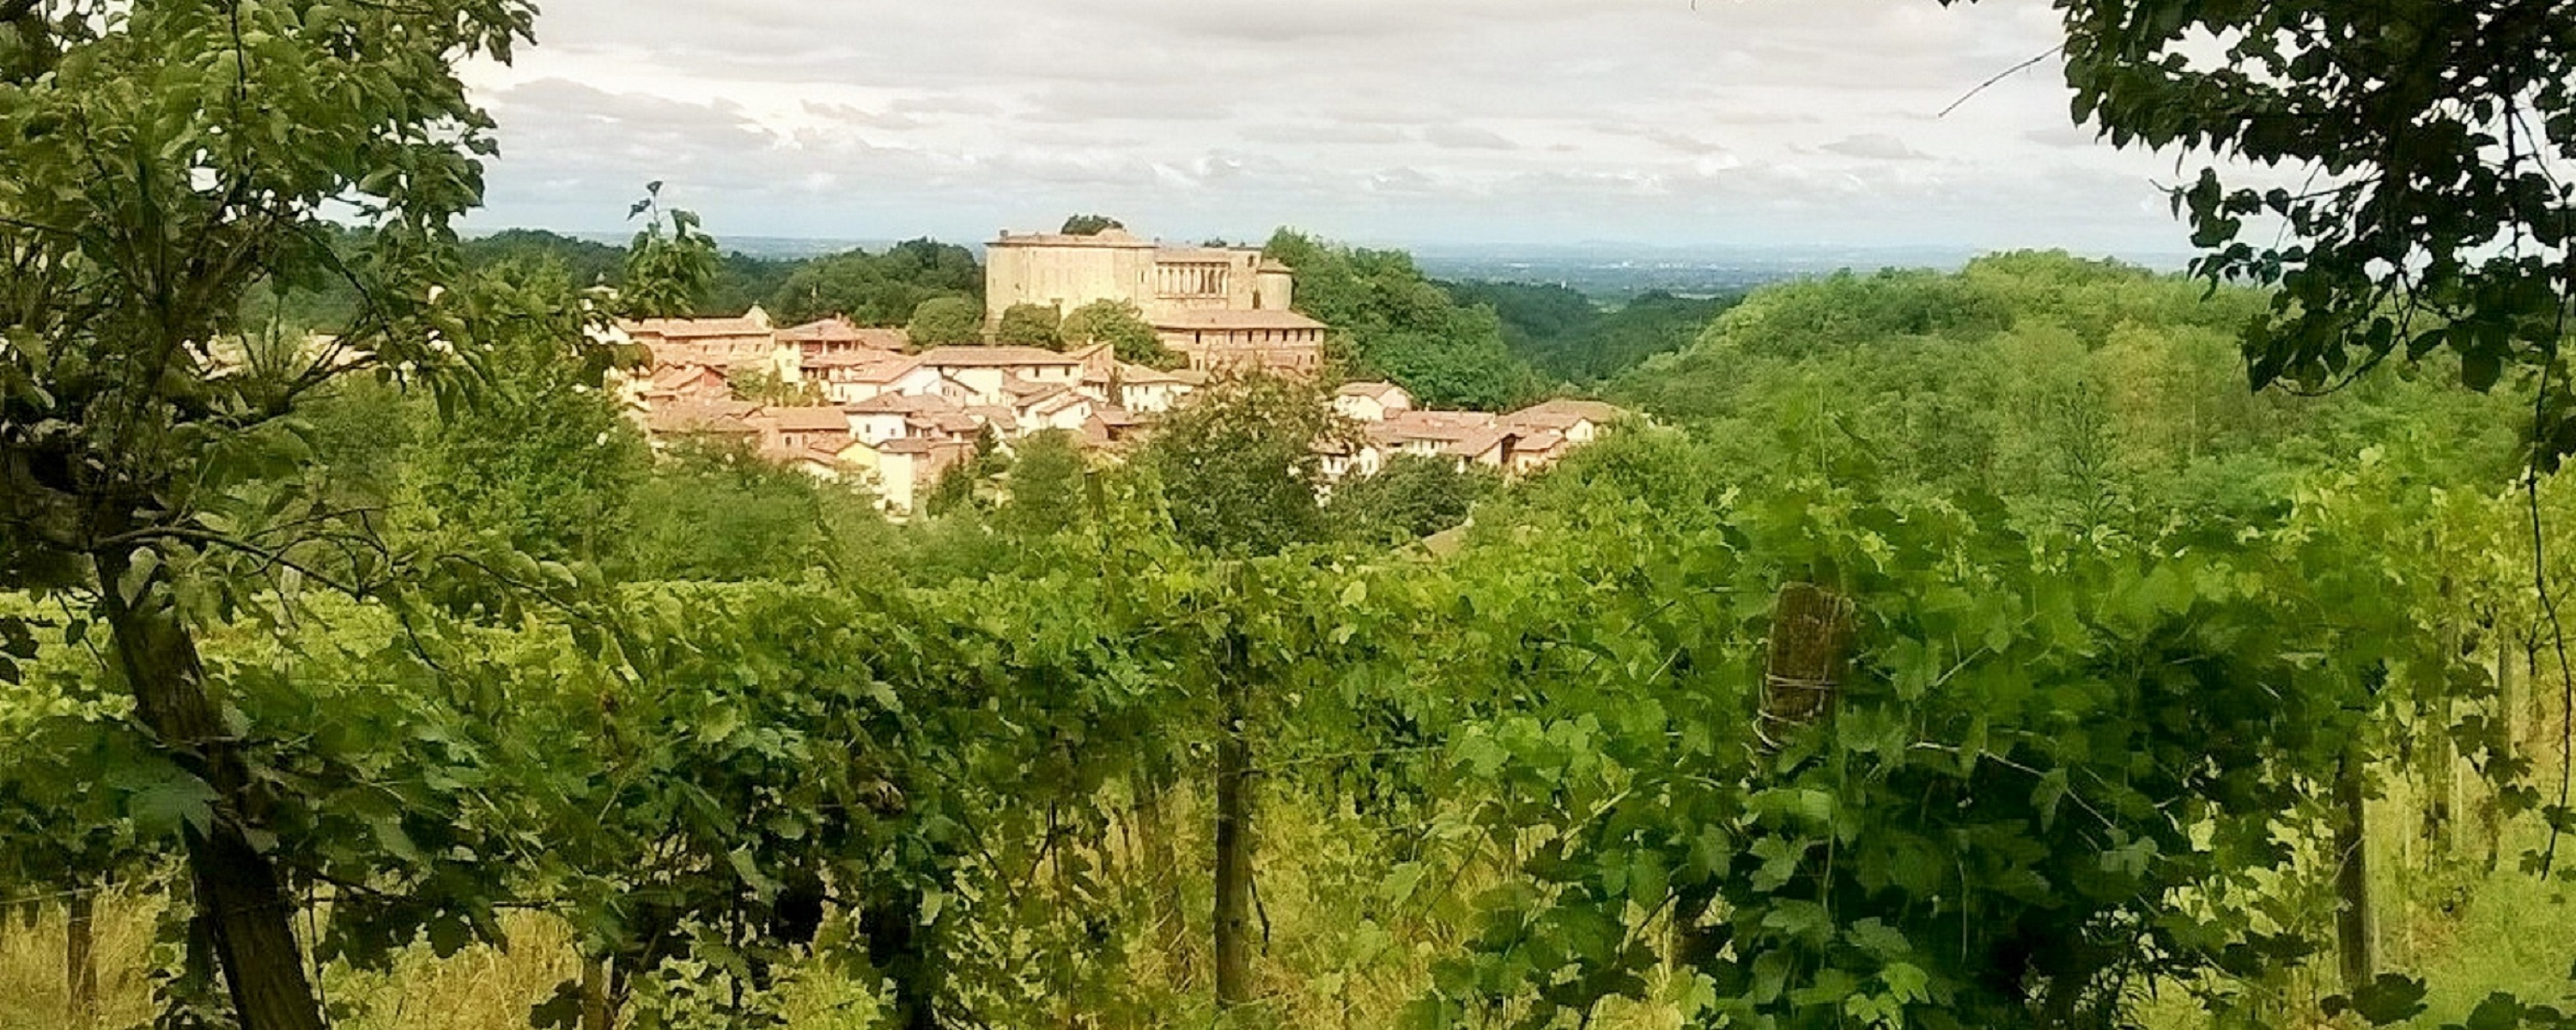 OS Castle - Historical House - Romantic apartment in the tower of Tassarolo Castle